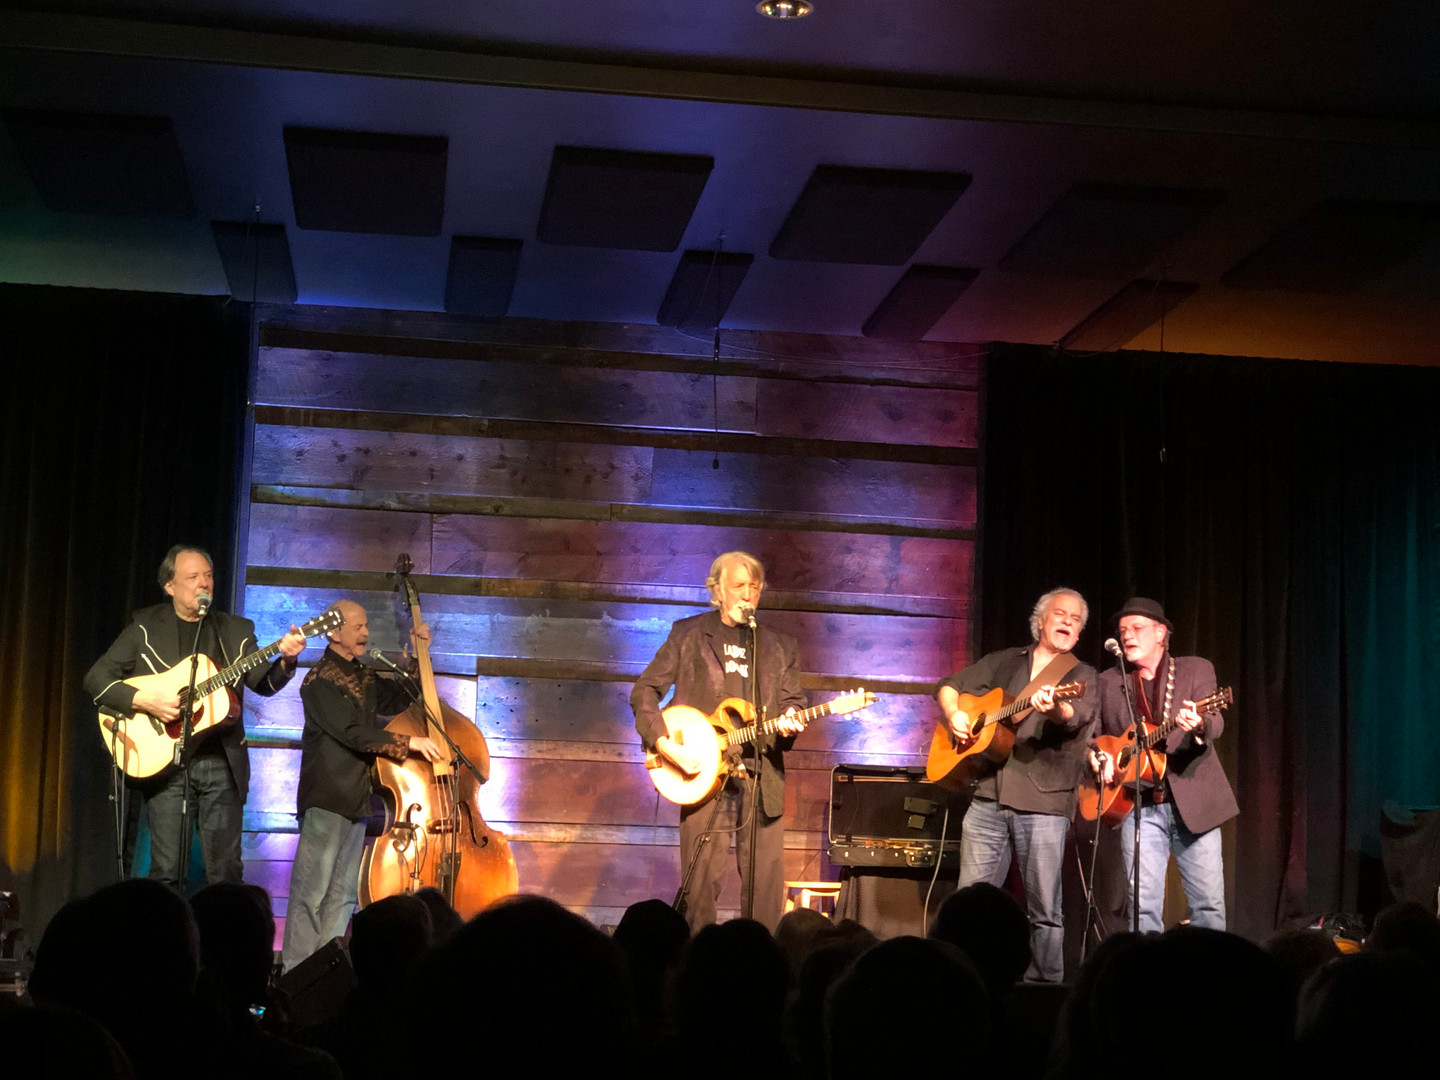 John McEuen & The String Wizzards